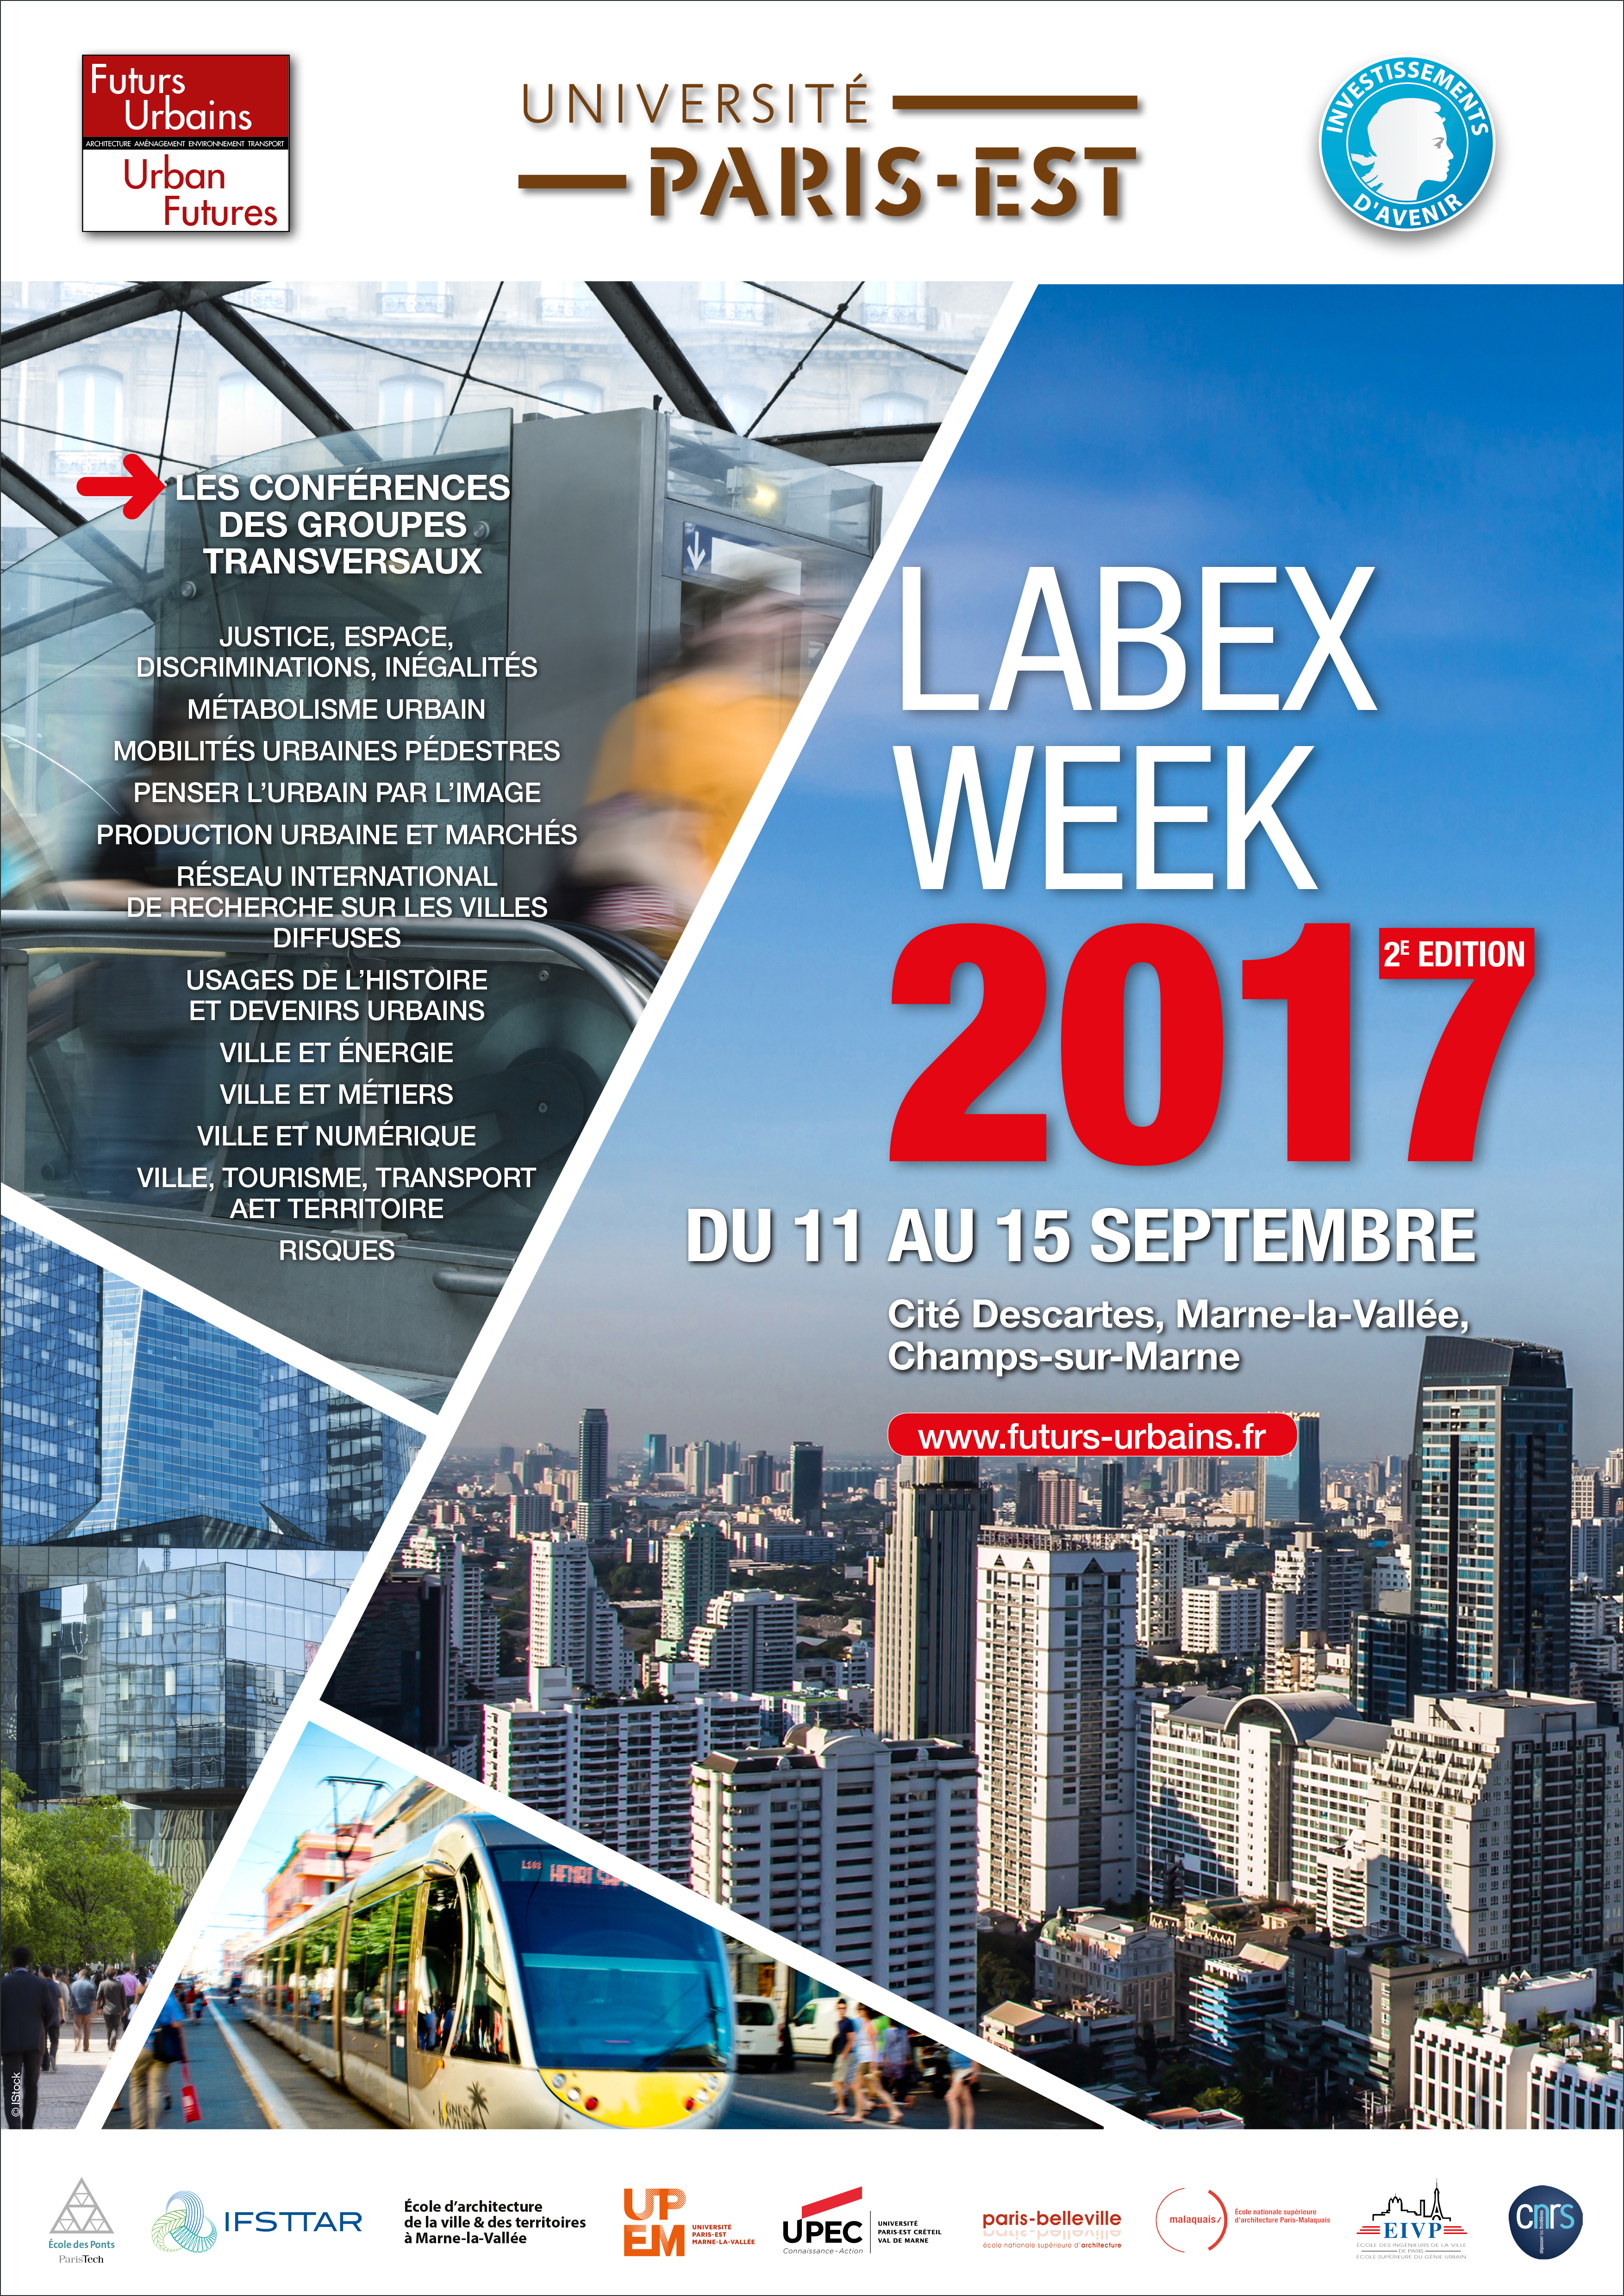 [Translate to Anglais:] LABEX WEEK 2017